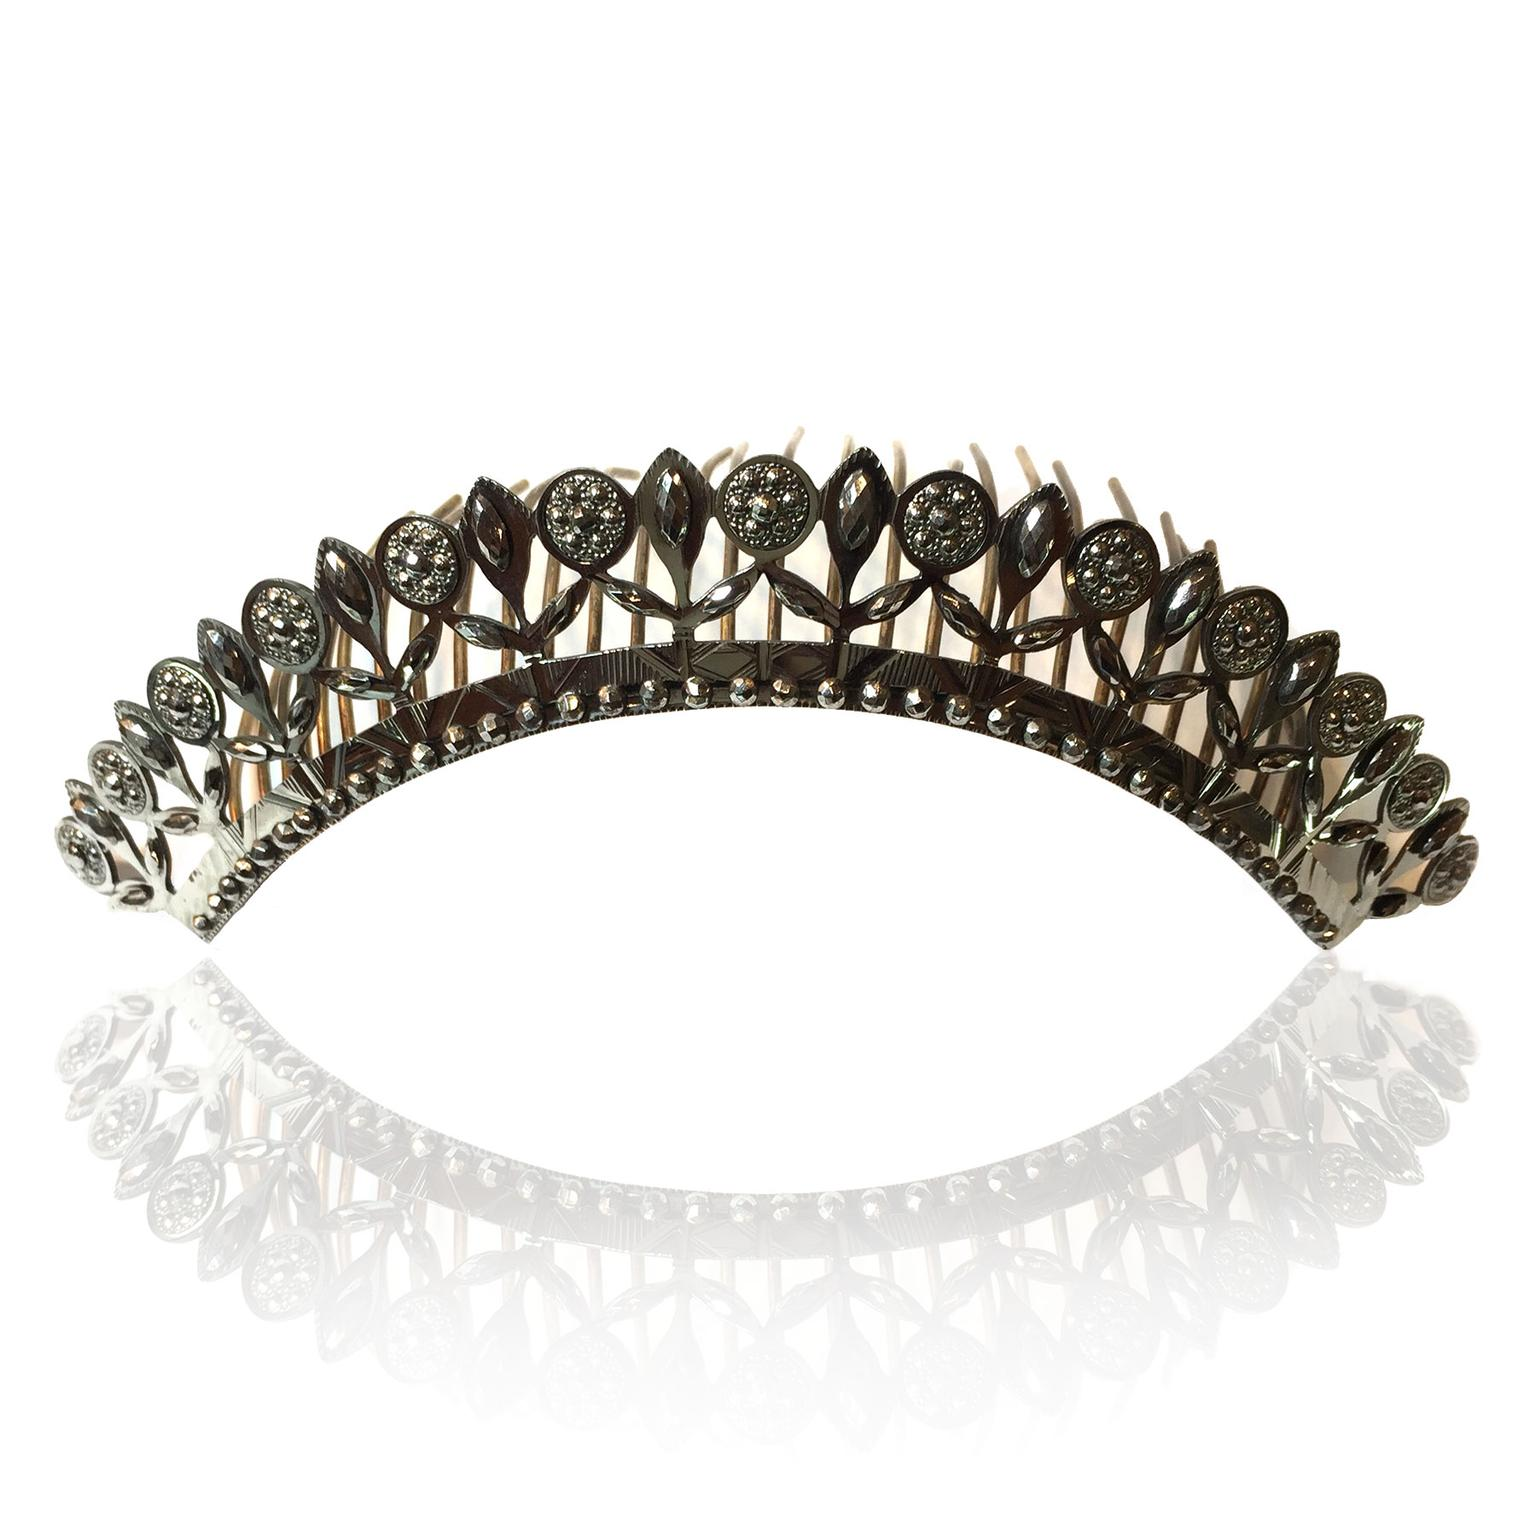 Spare Room Antiques cut-steel tiara